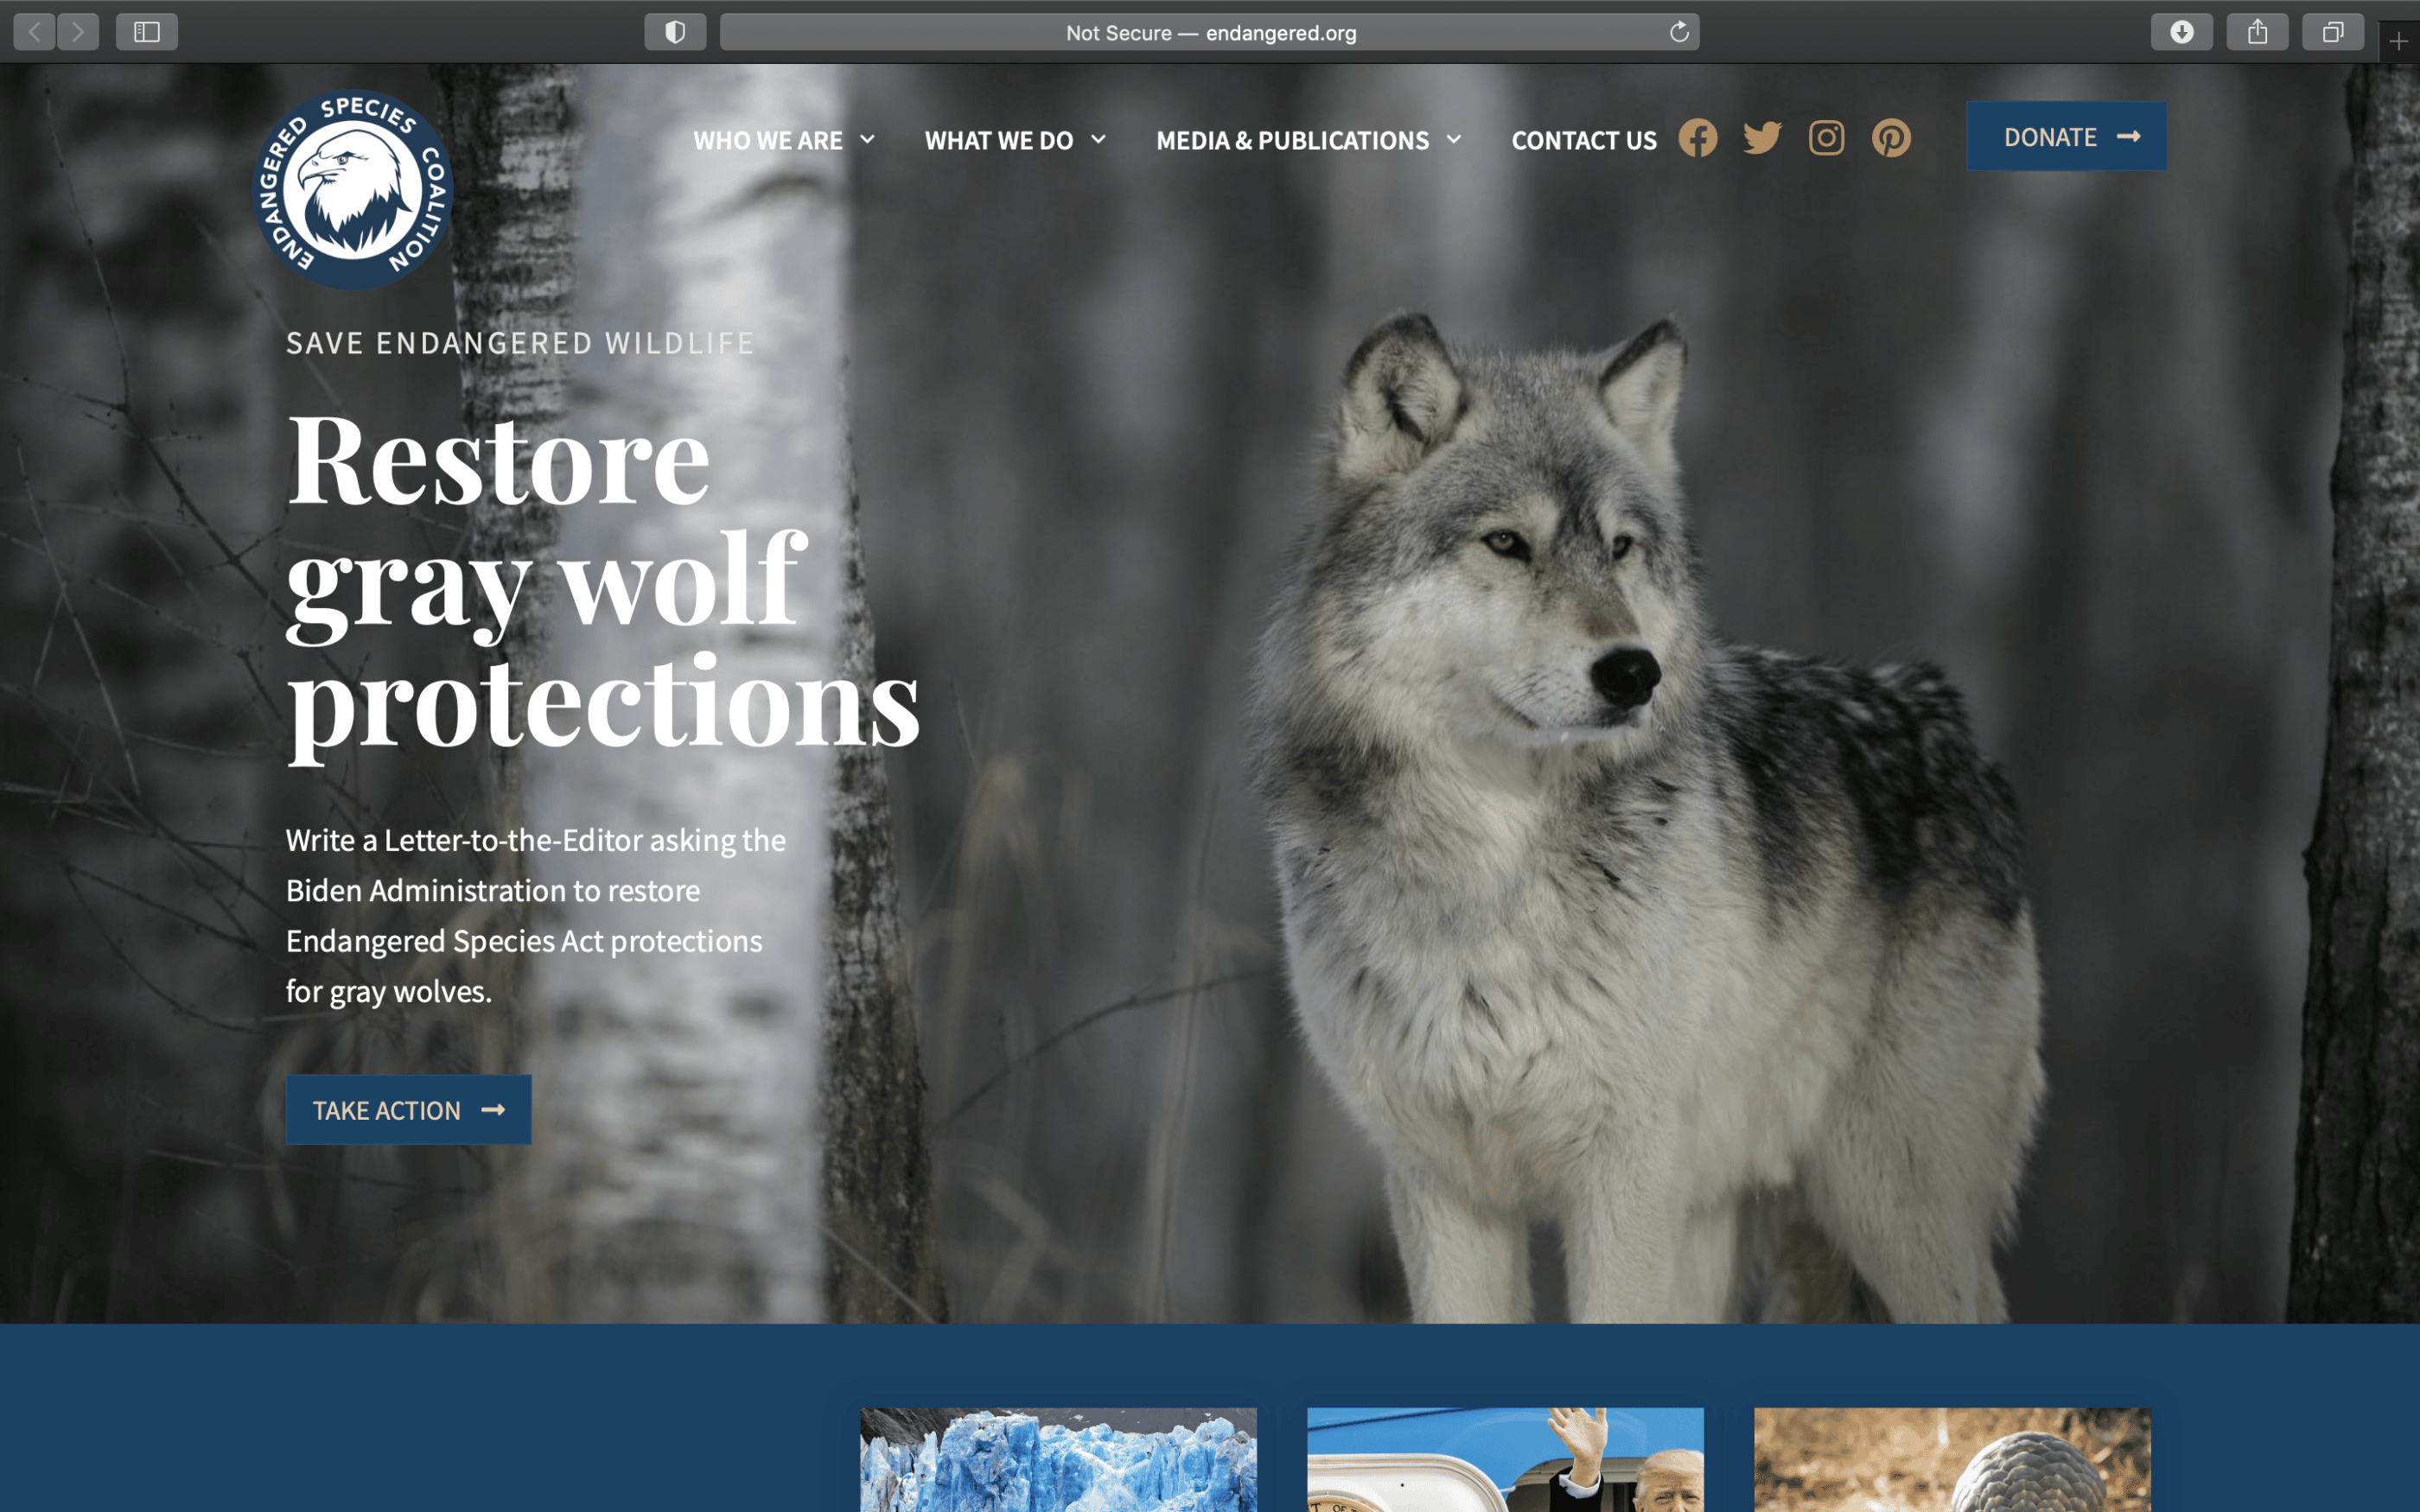 Screenshot of National Network Refreshes Design and Membership with New WordPress Site